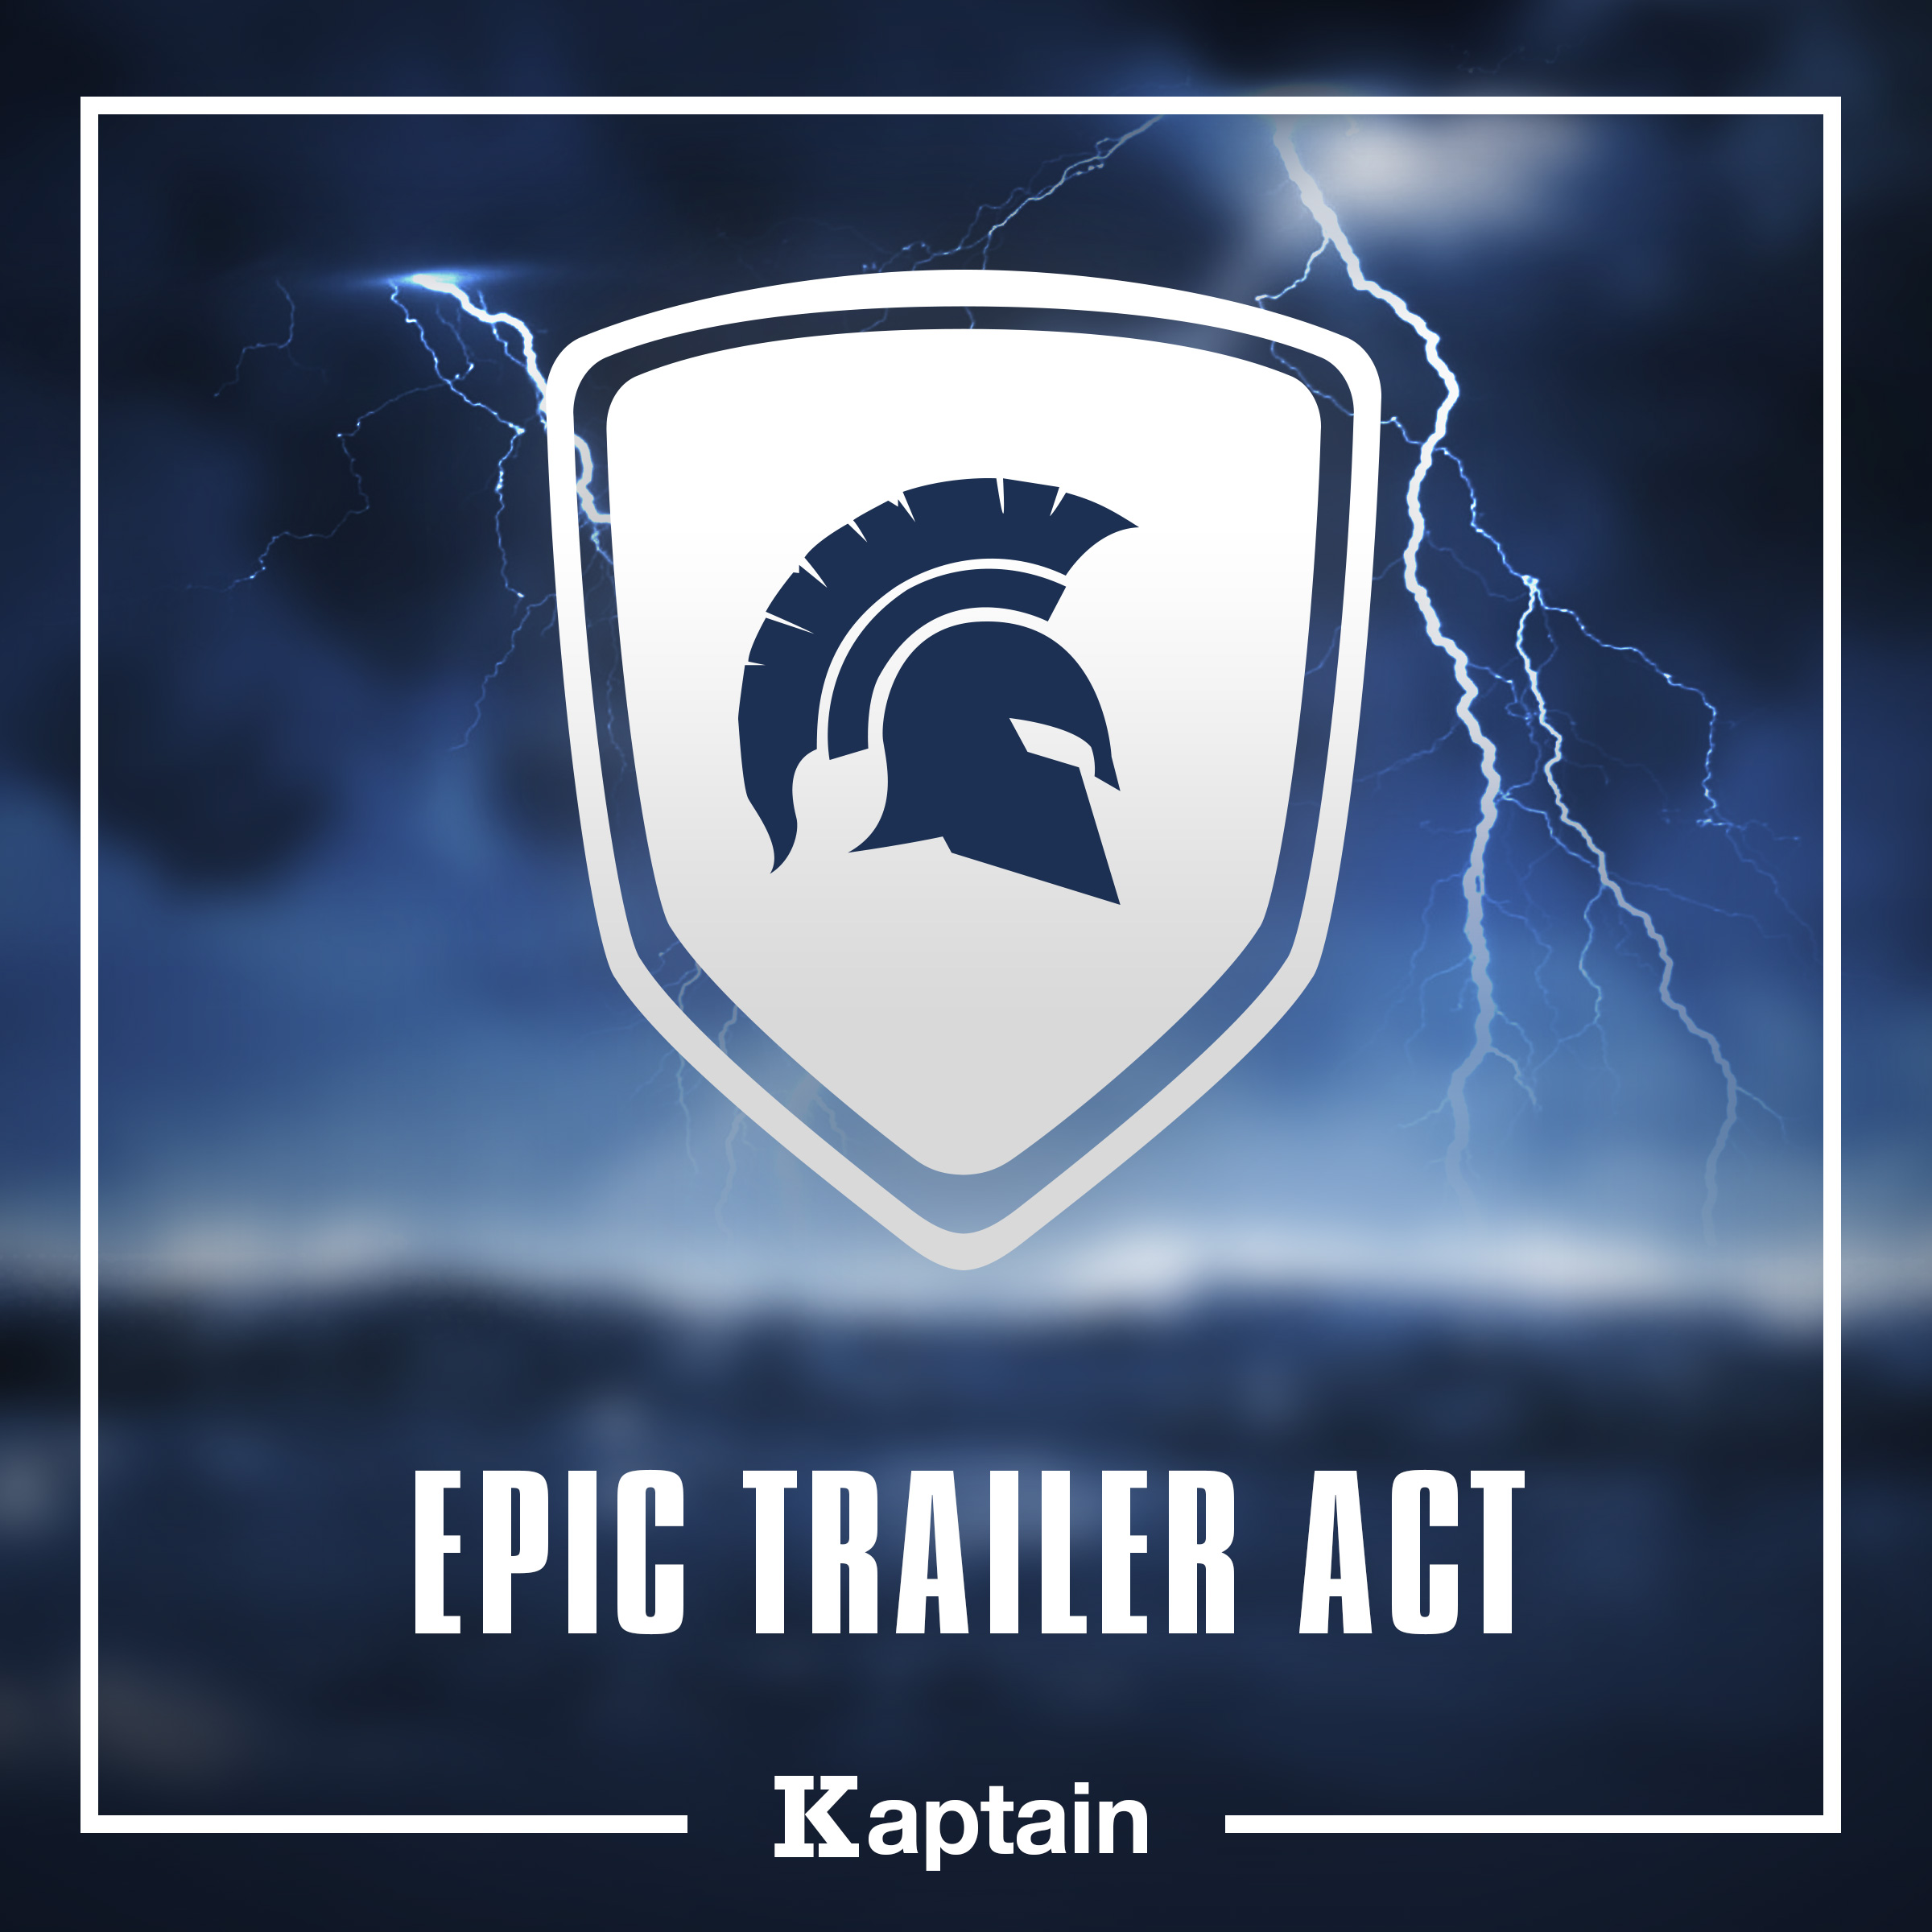 Epic Trailer Act